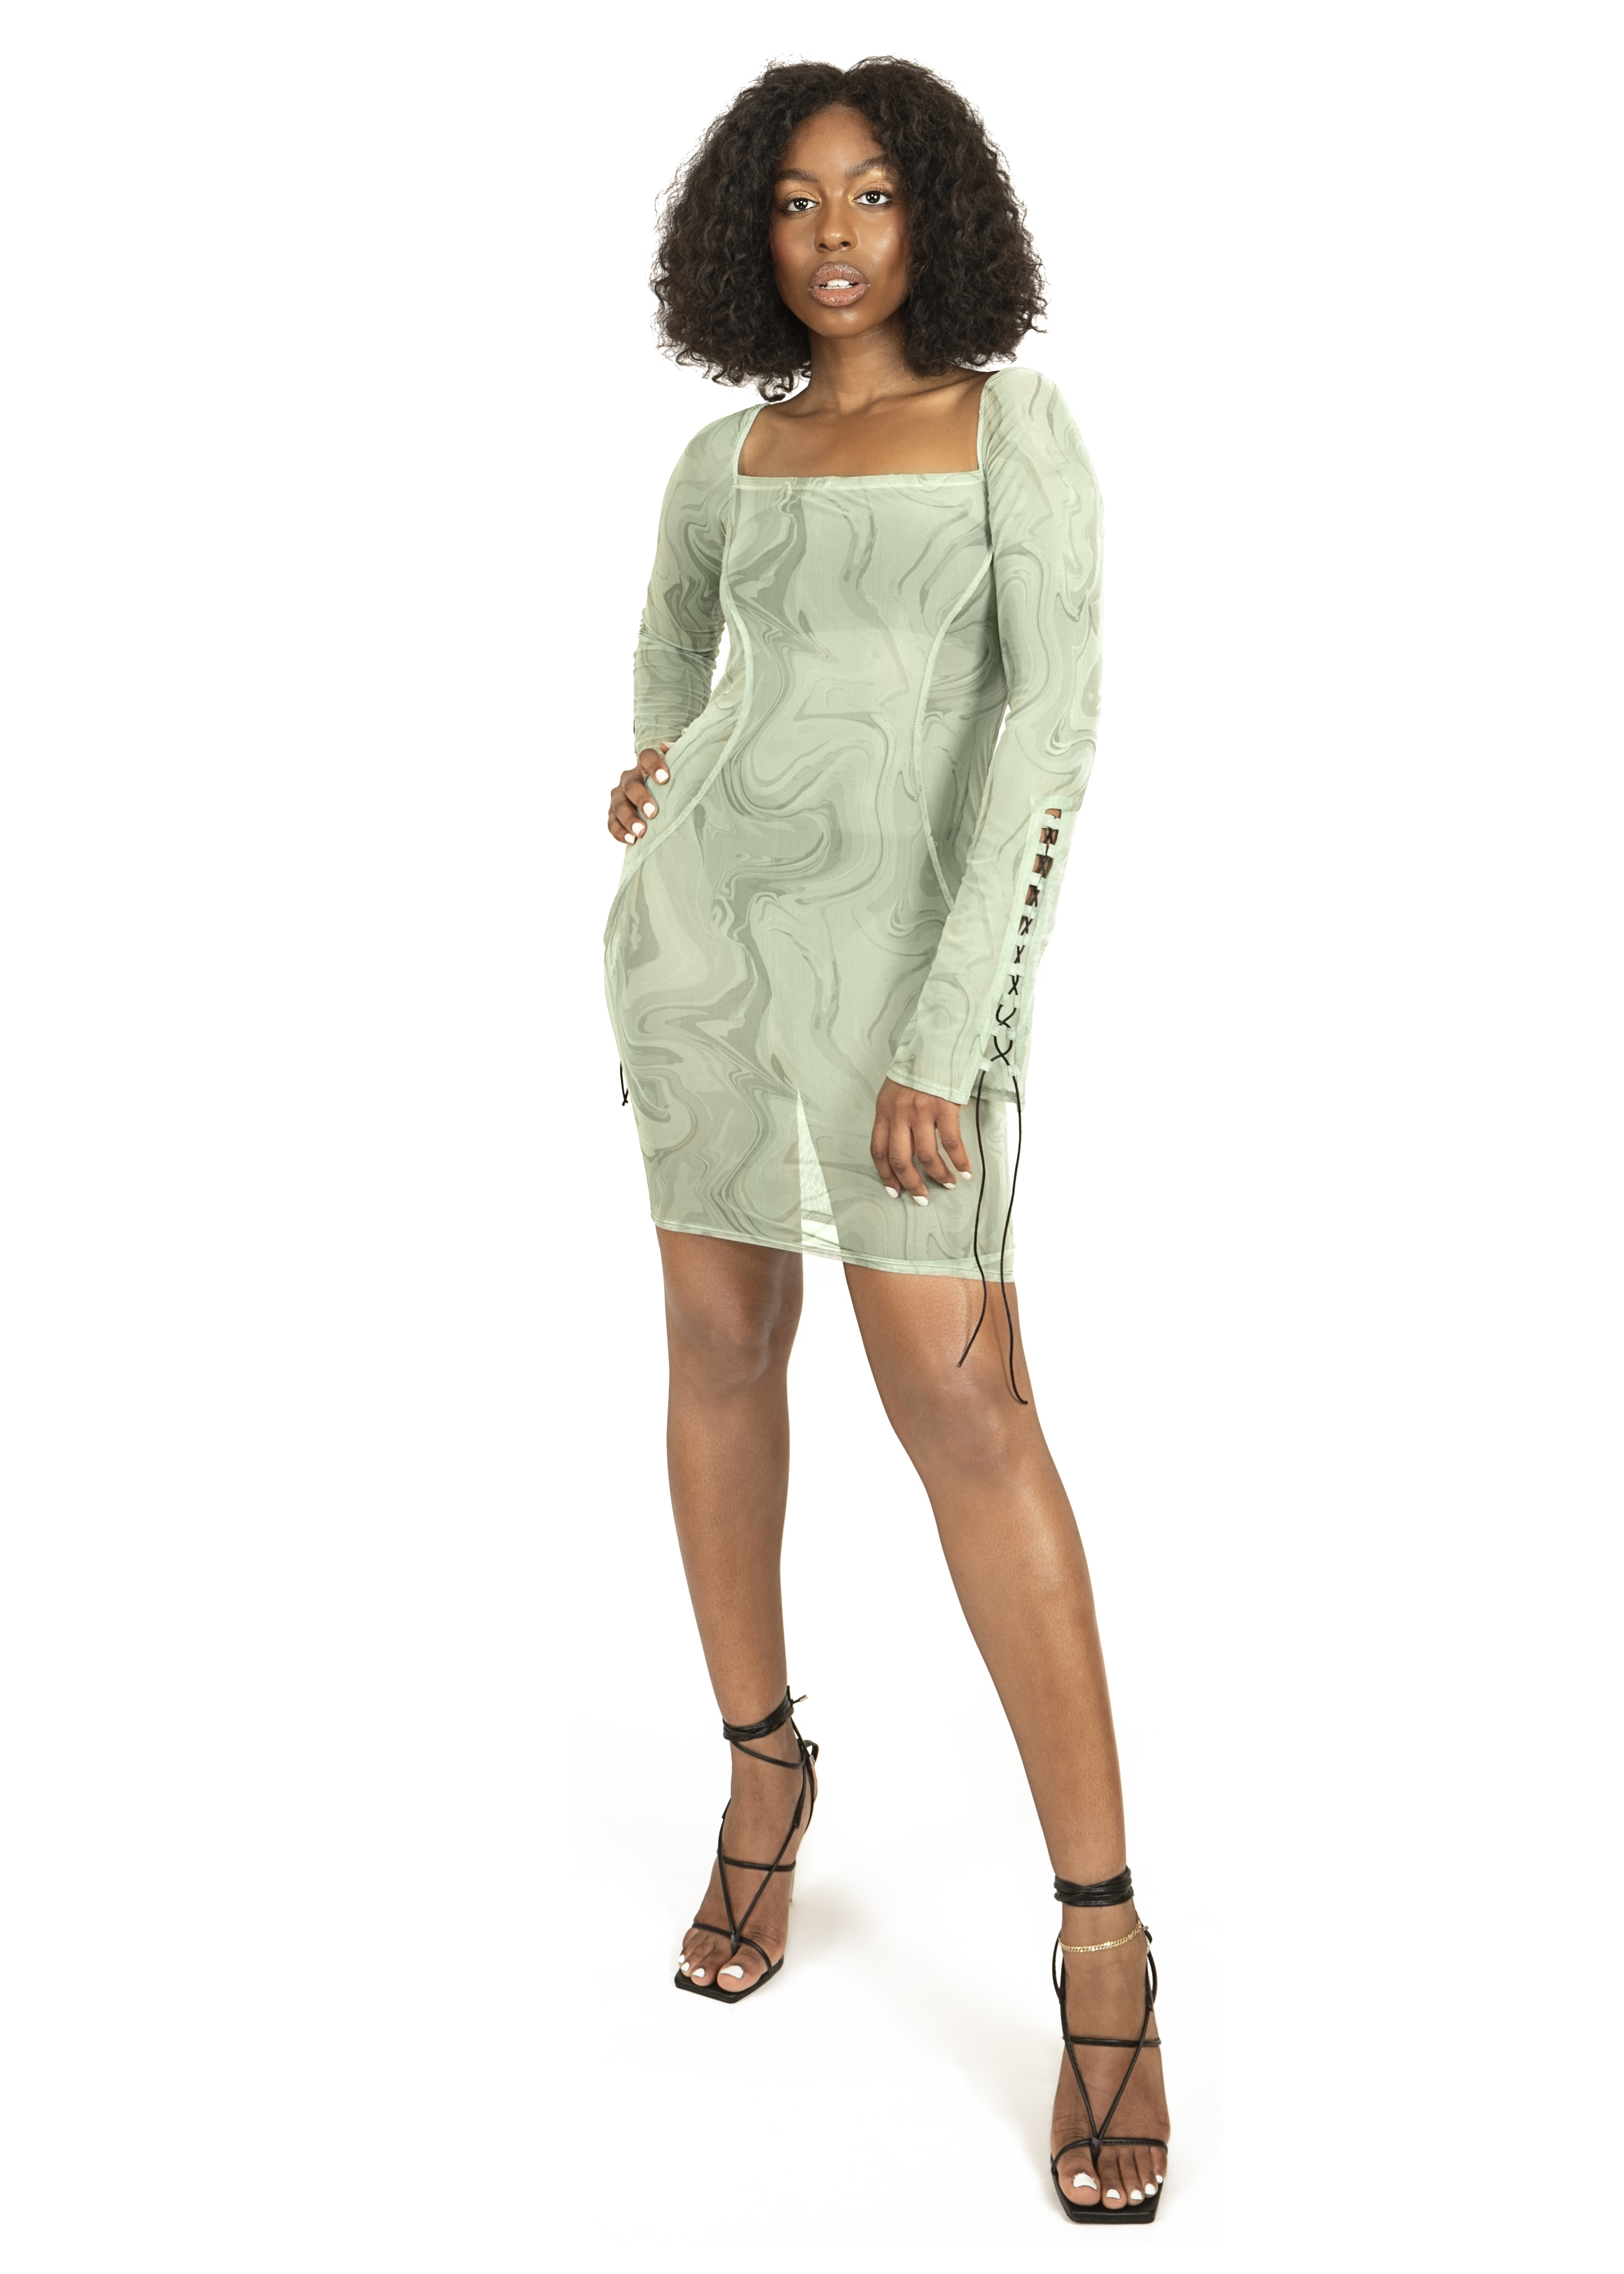 Dress_cloths_garments_product_photos_with_model_13